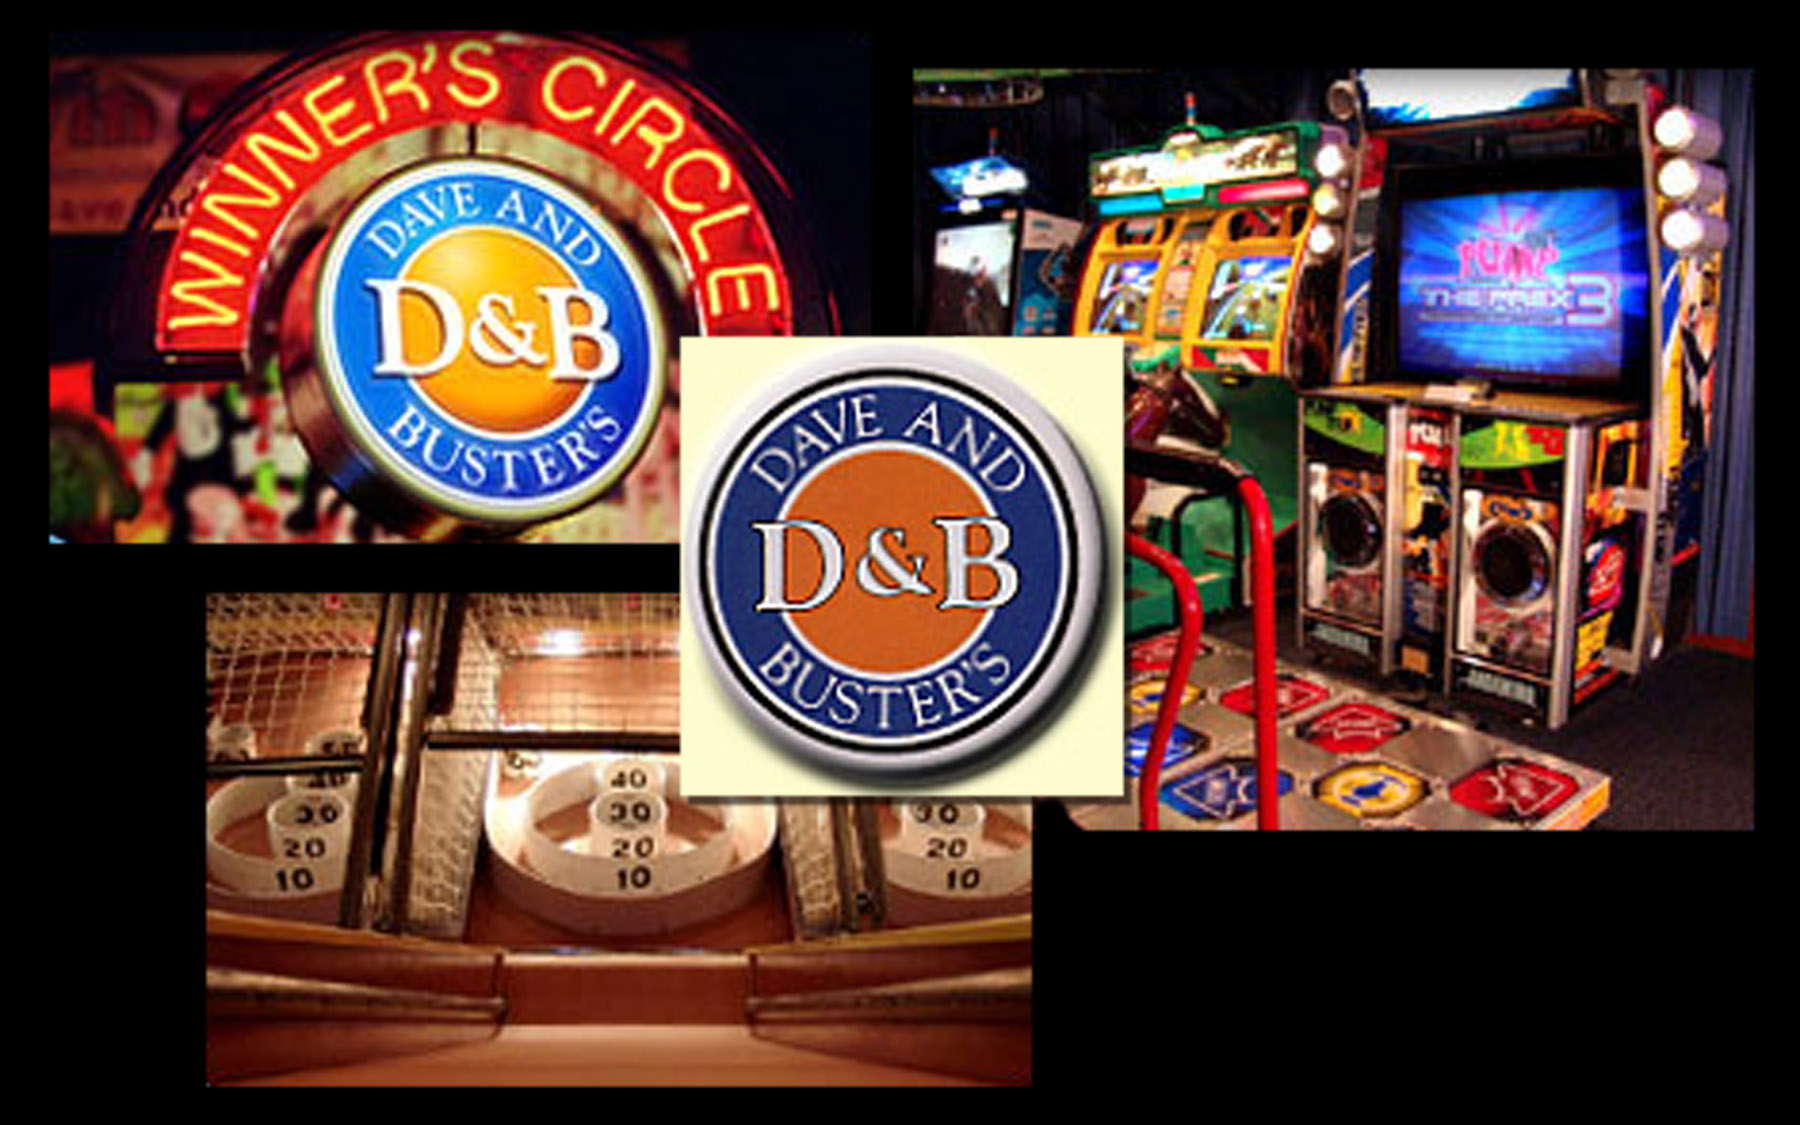 Dave & Buster's in Plymouth Meeting, PA